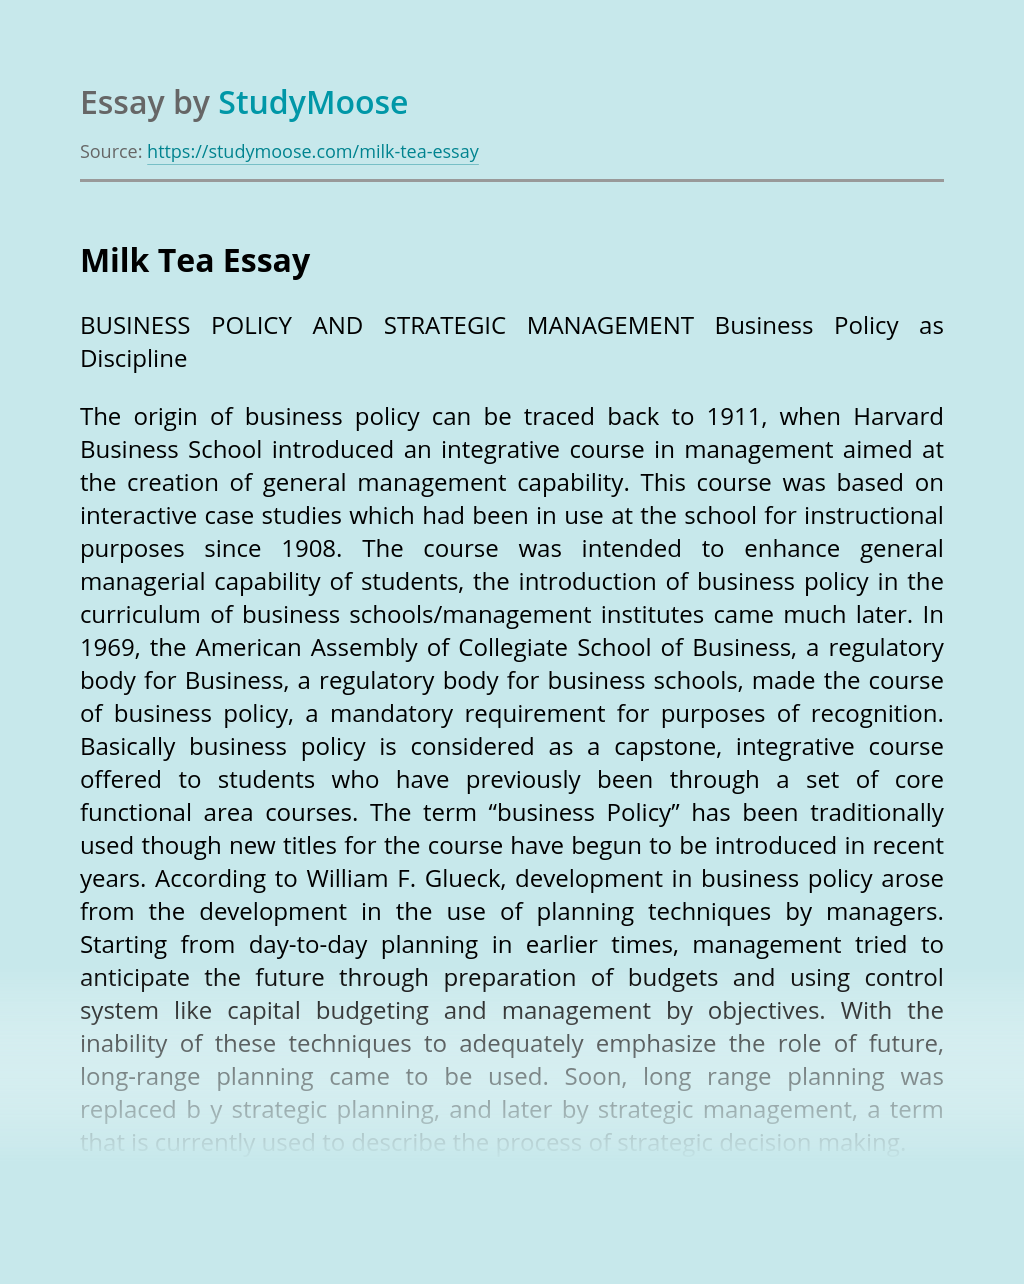 Business Policy as Discipline